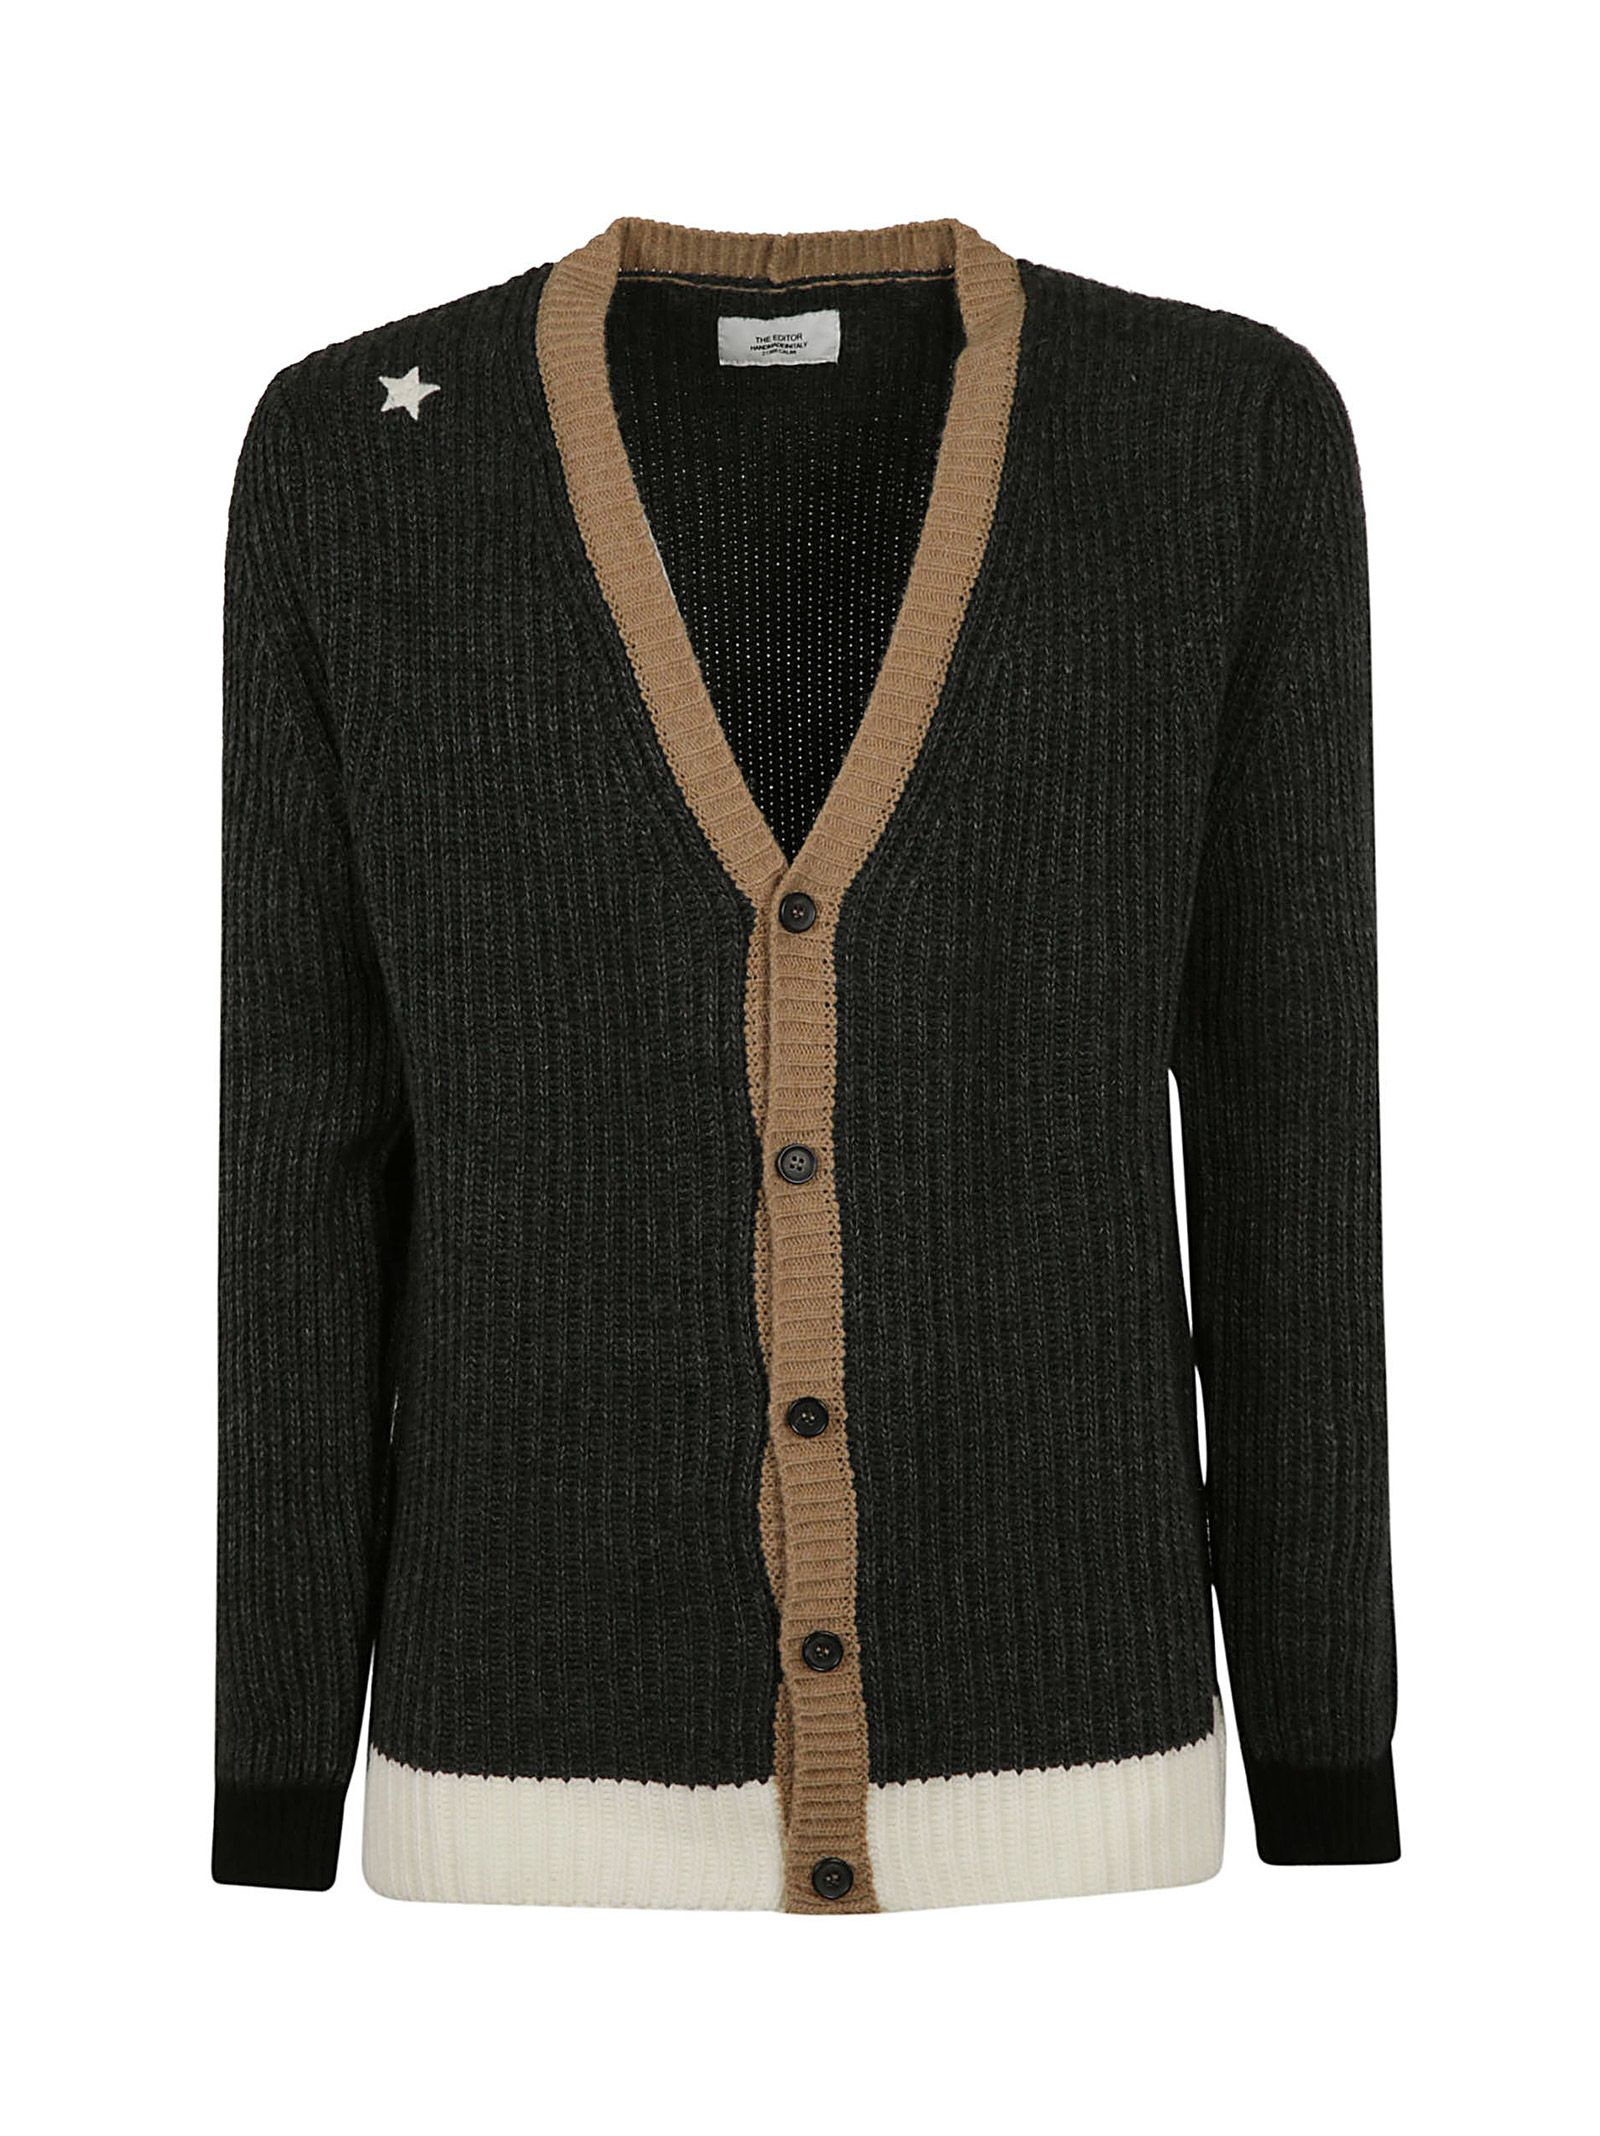 THE EDITOR Knitted Cardigan in Black